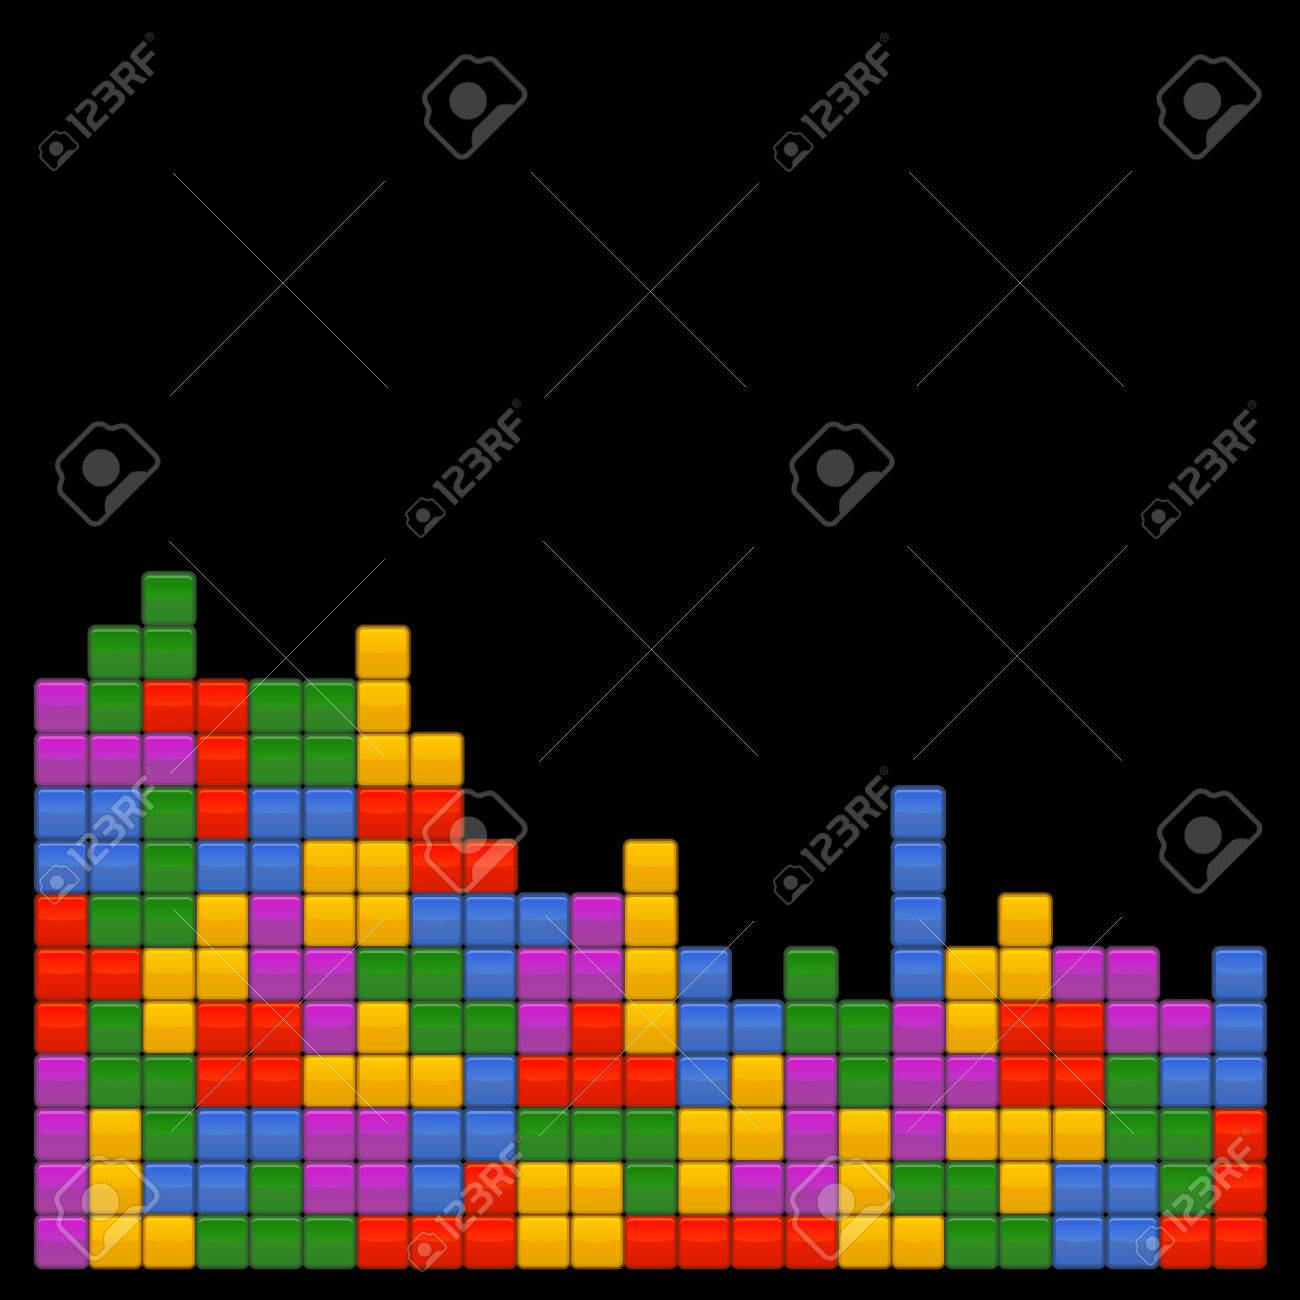 Game Brick Tetris Template On Black Background Vector 1300x1300